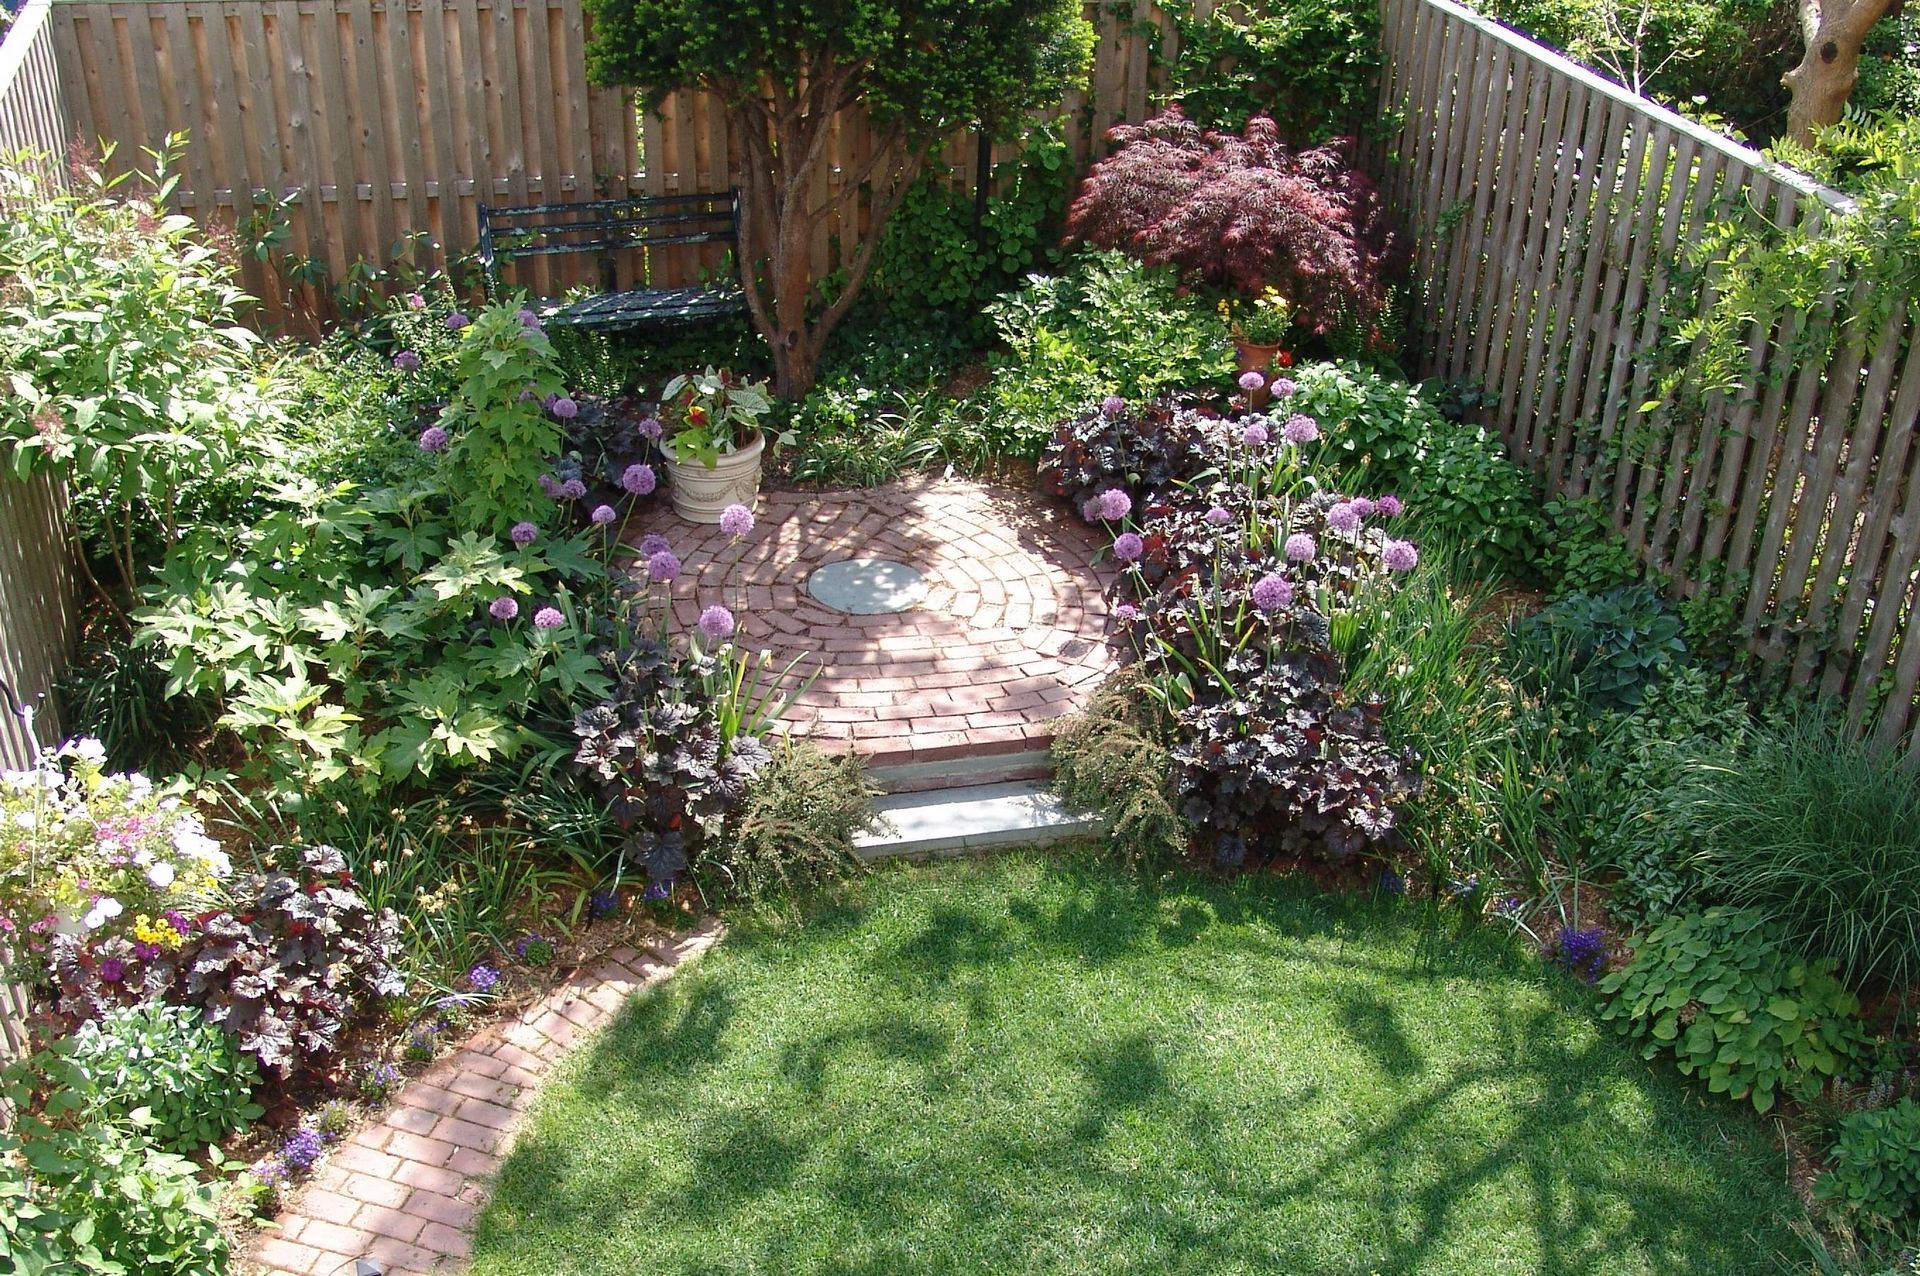 Townhouse gardens archives cynthia gillis garden design for Garden design brooklyn